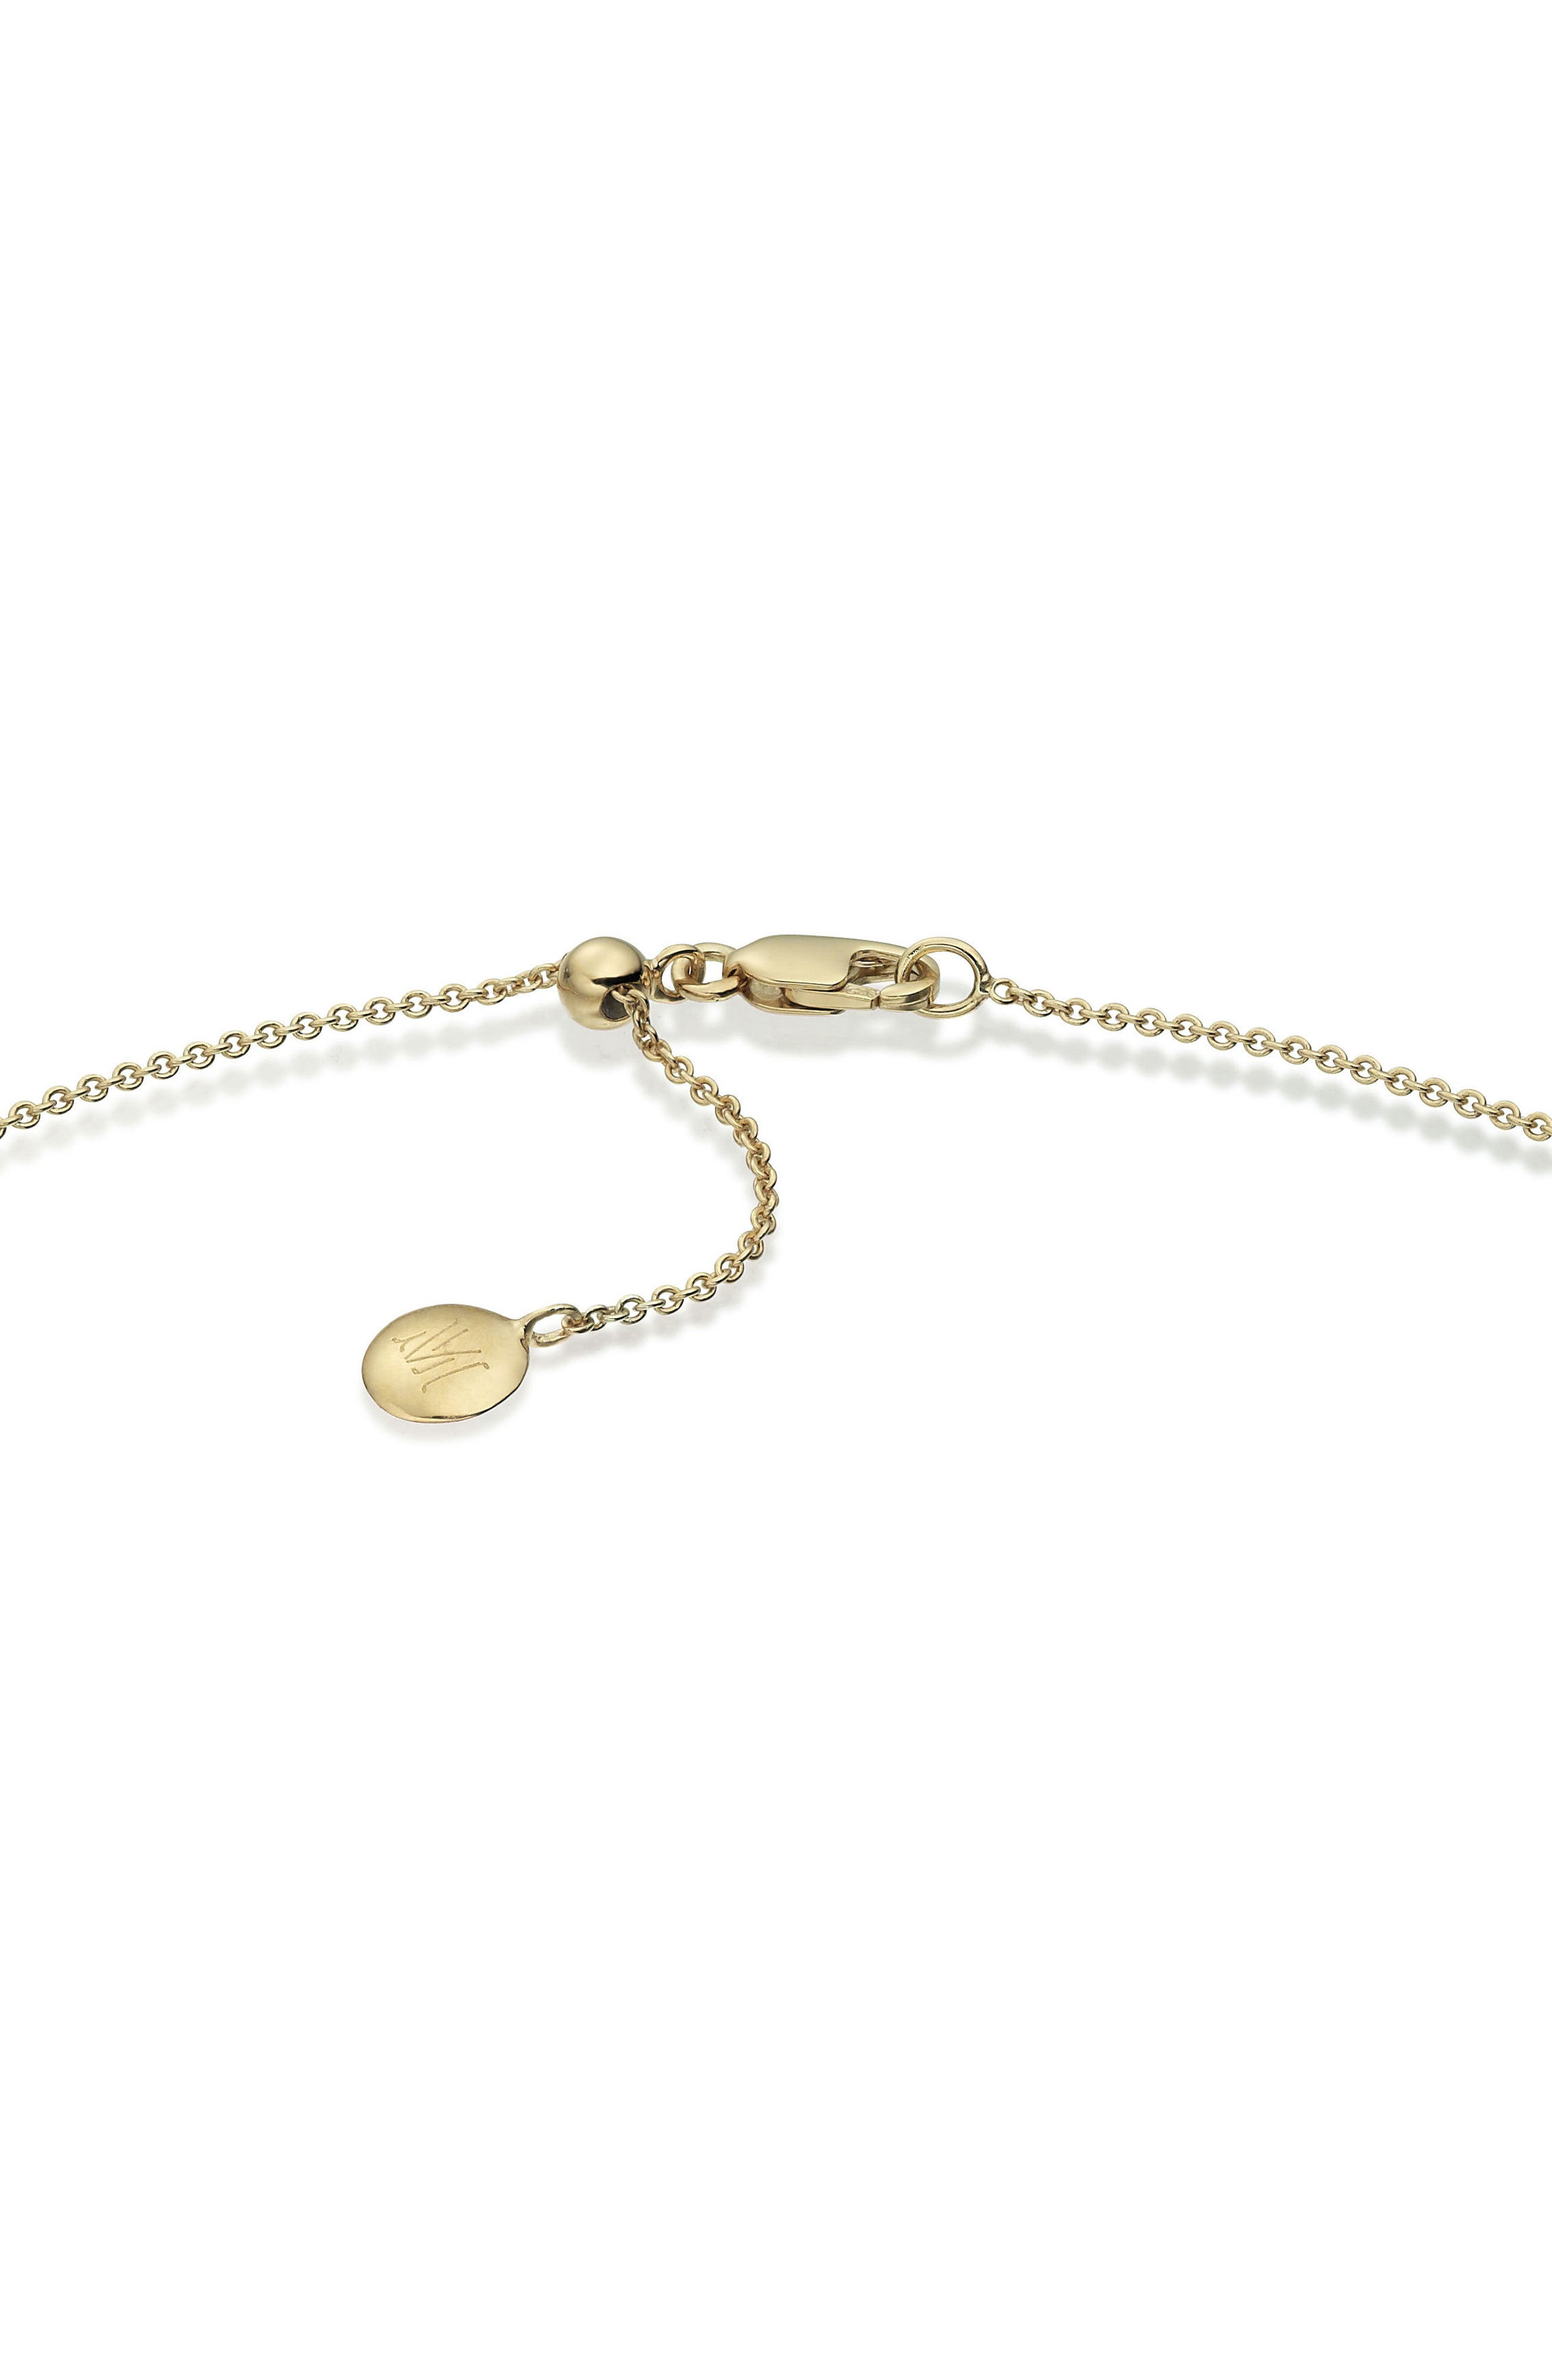 32 Inch Adjustable Rolo Chain,                             Alternate thumbnail 2, color,                             Yellow Gold